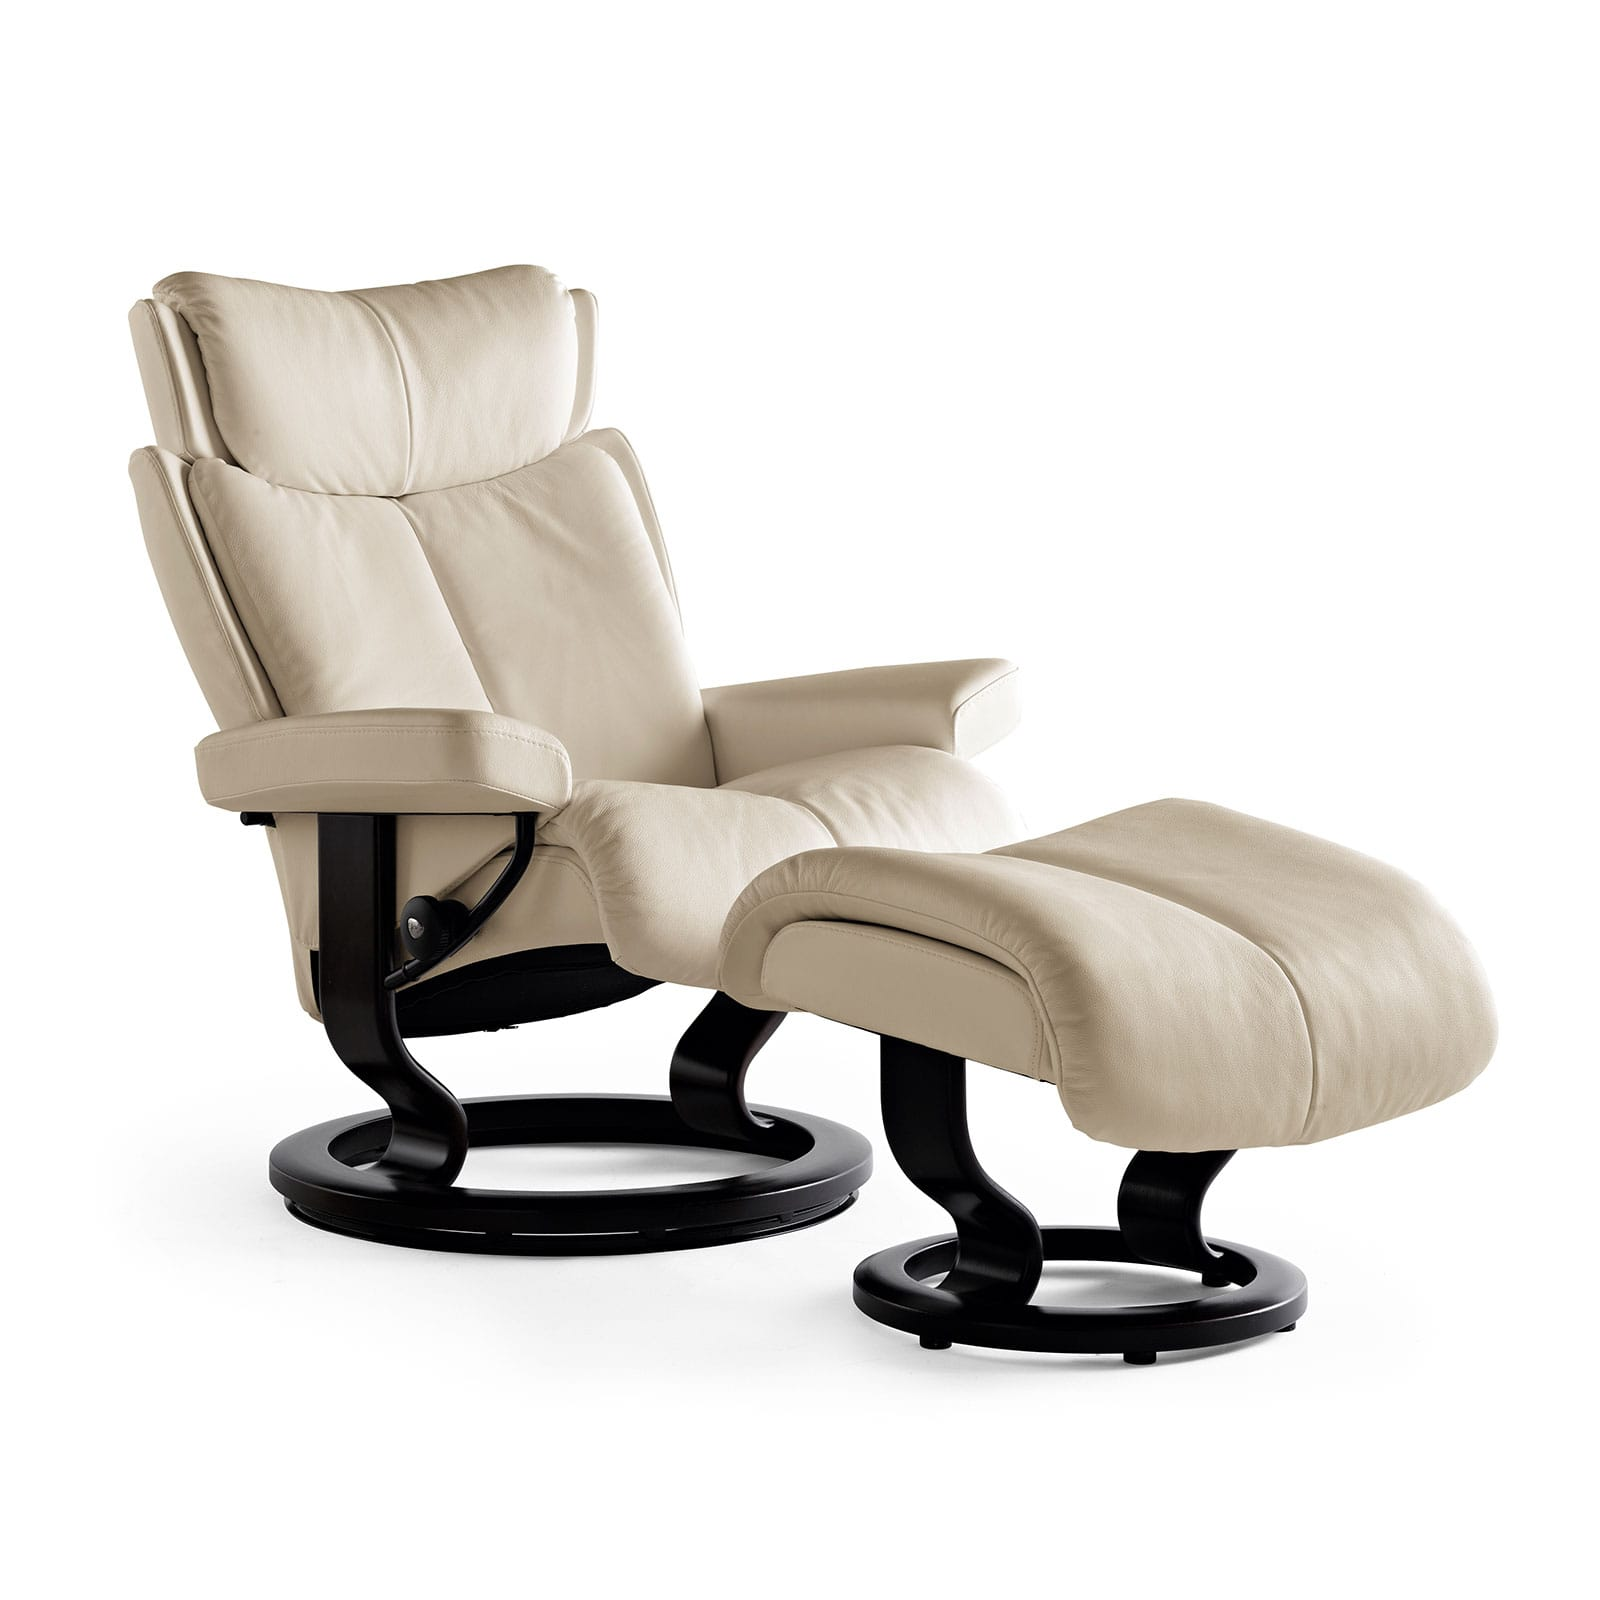 Sessel Stressless Preise Preis Stressless Sessel Magic